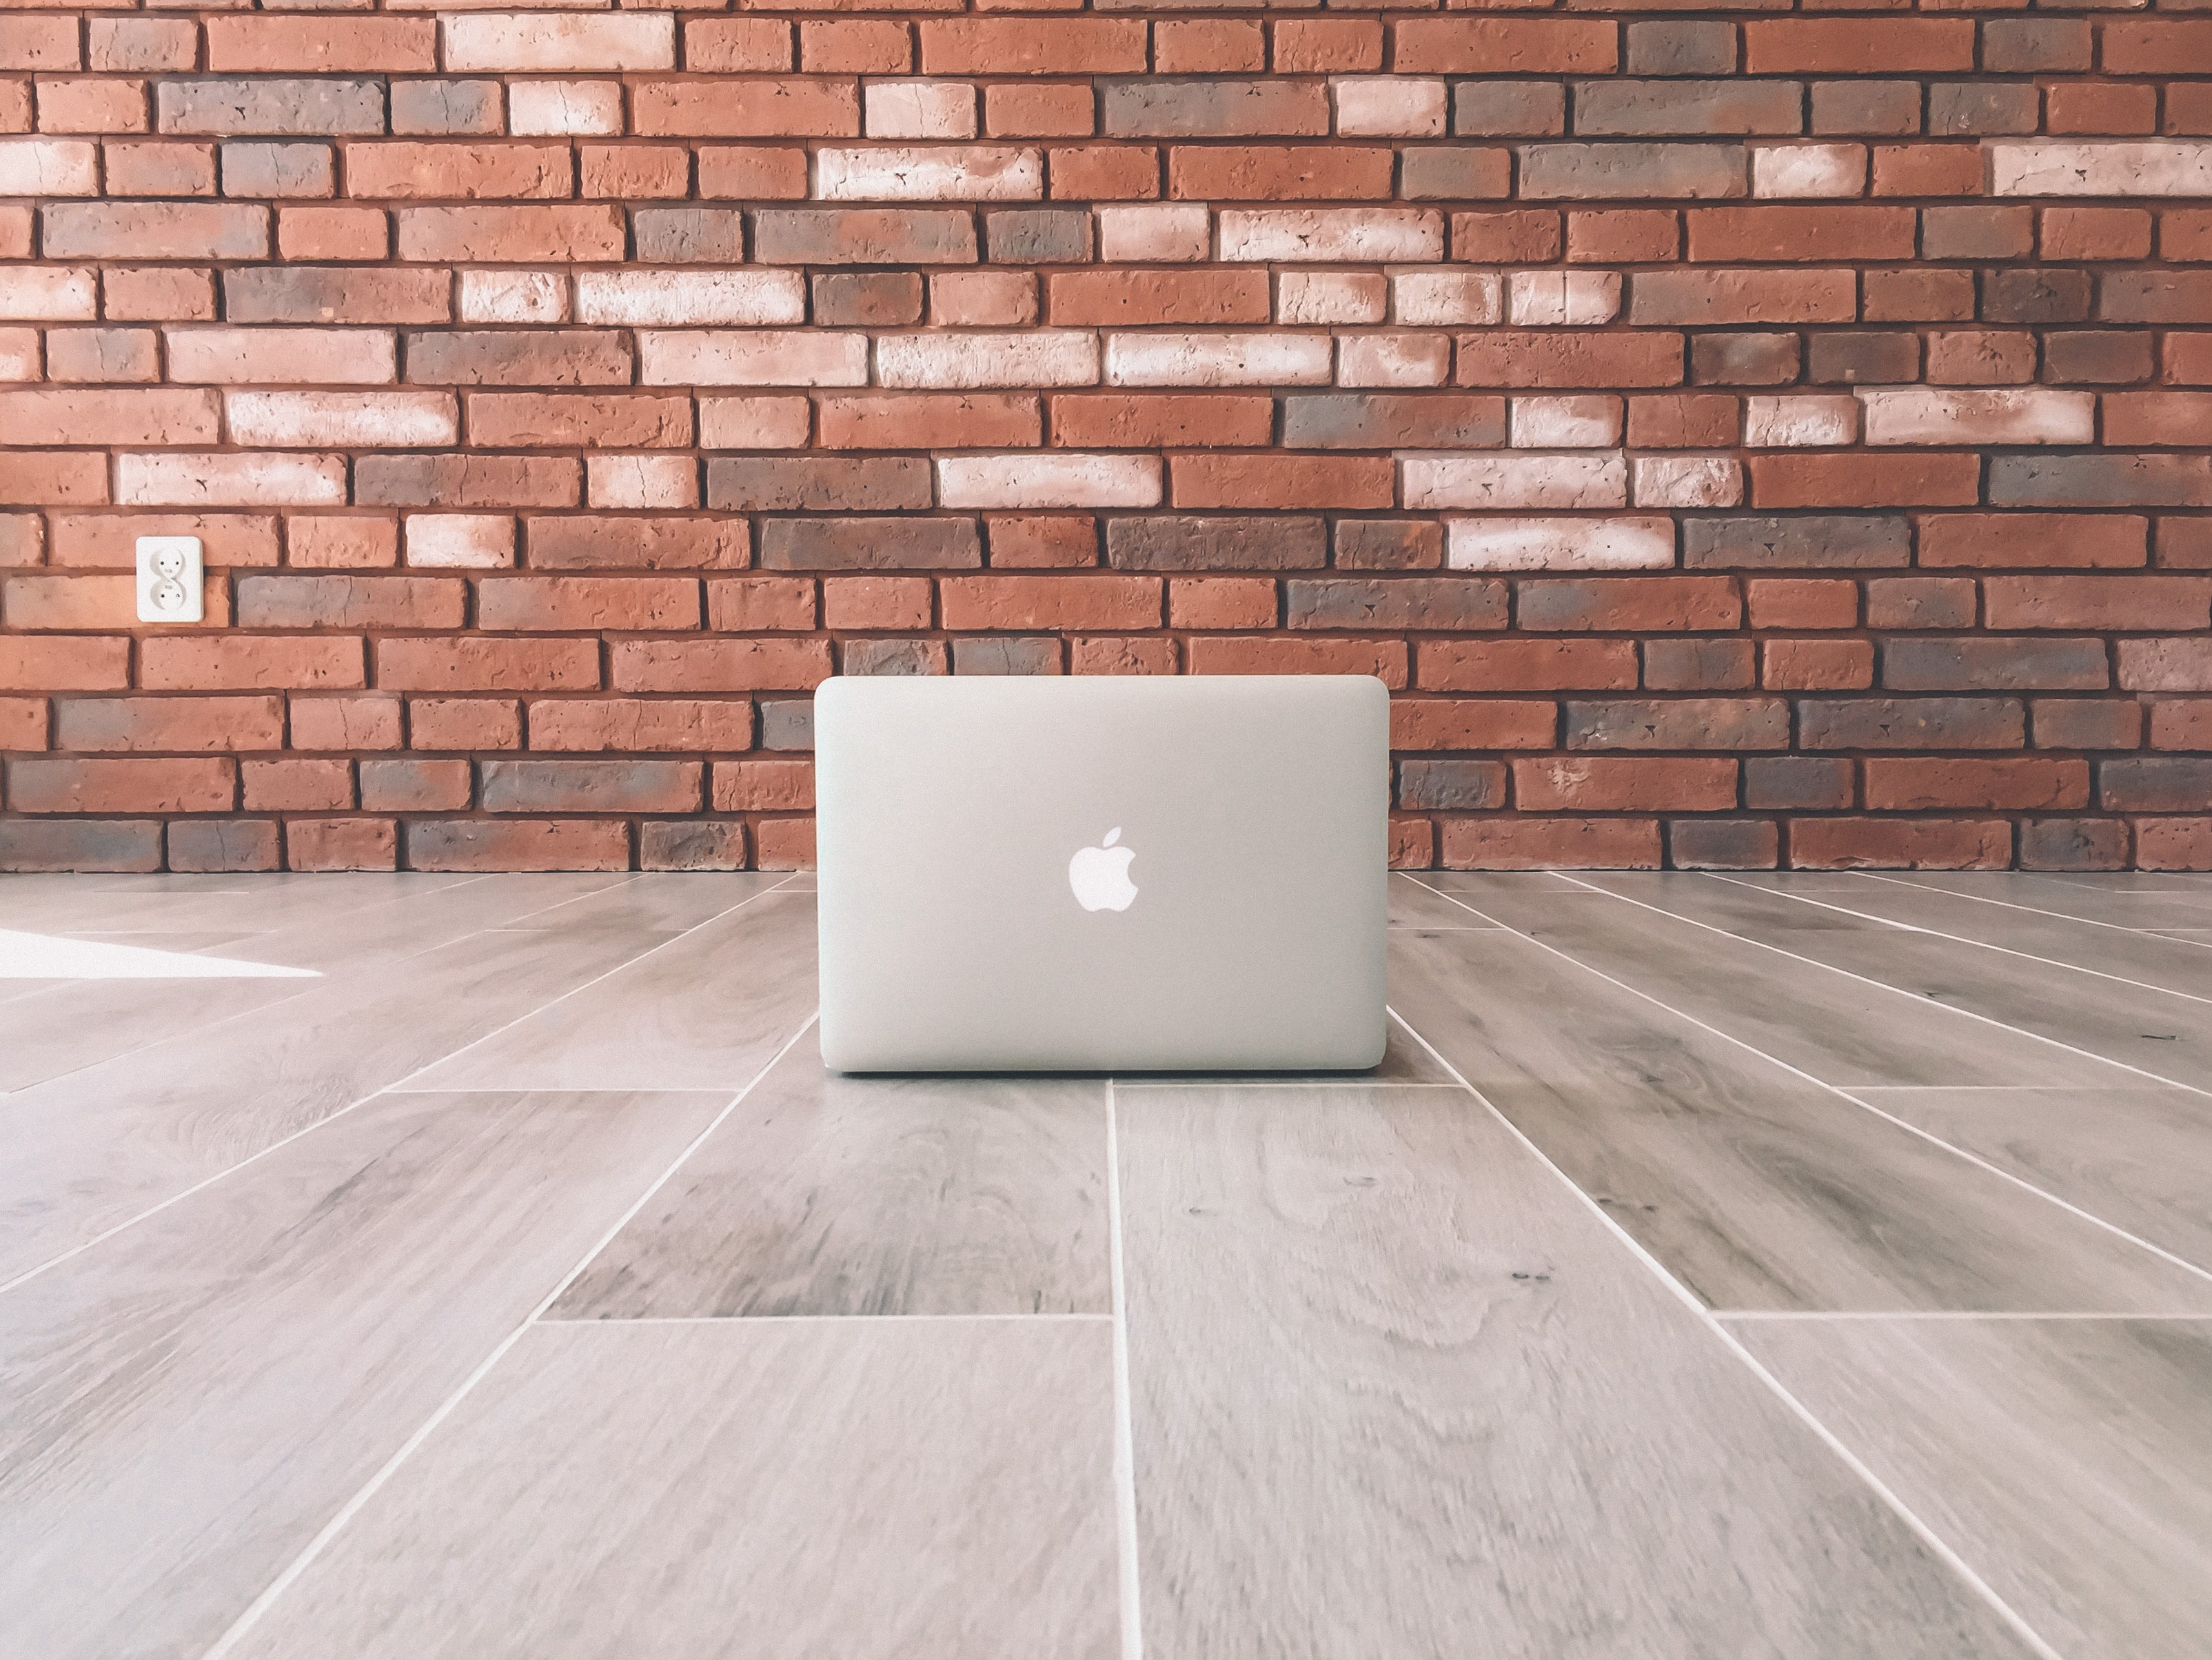 MacBook on floor